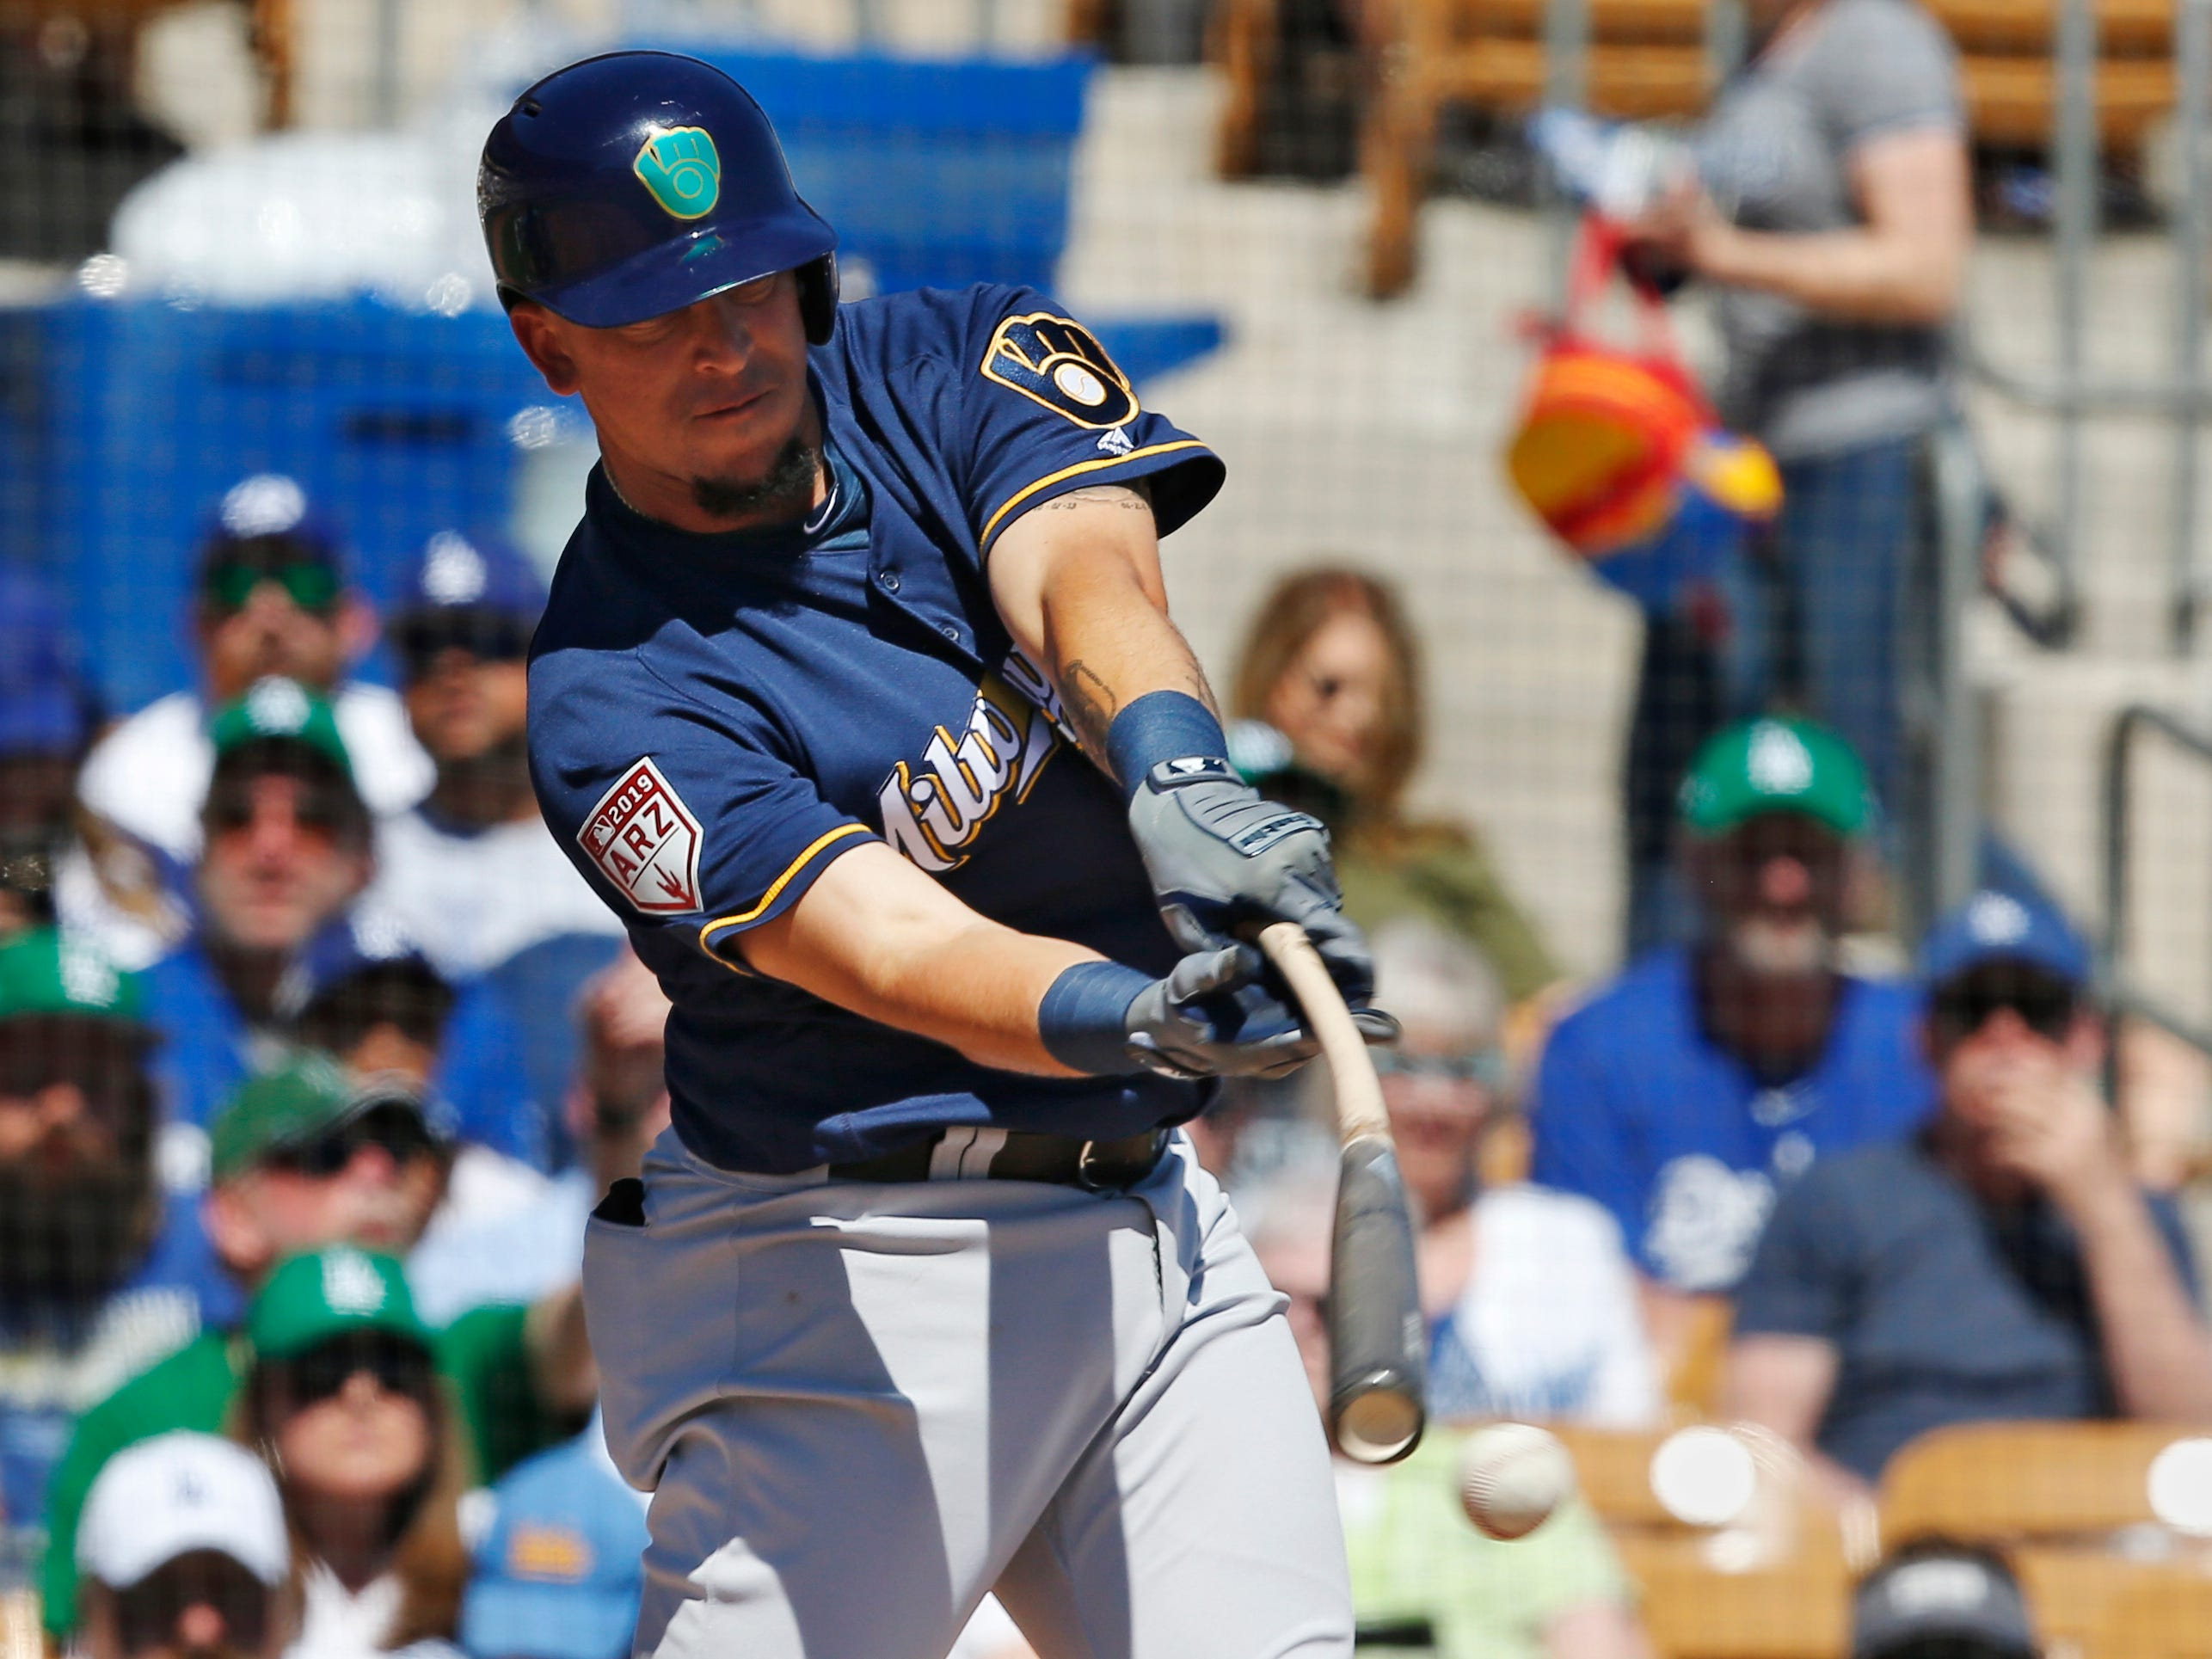 Milwaukee Brewers' Hernán Pérez grounds out in the first inning of a spring training baseball game Sunday, March 17, 2019, in Glendale, Ariz. (AP Photo/Sue Ogrocki) ORG XMIT: AZSO102